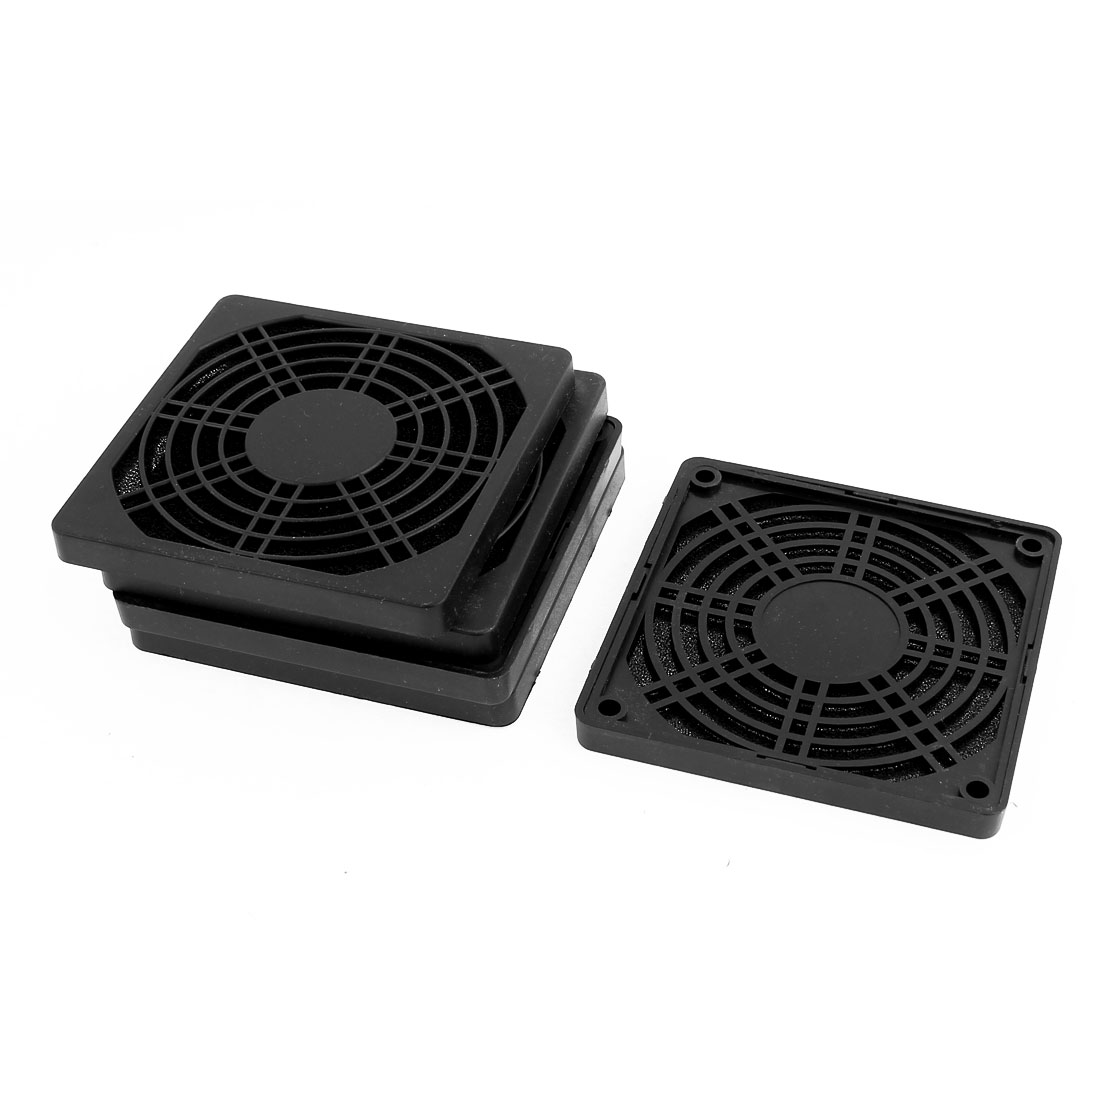 5pcs 97mm x 97mm Dustproof Case PC Computer Case Fan Dust Filter